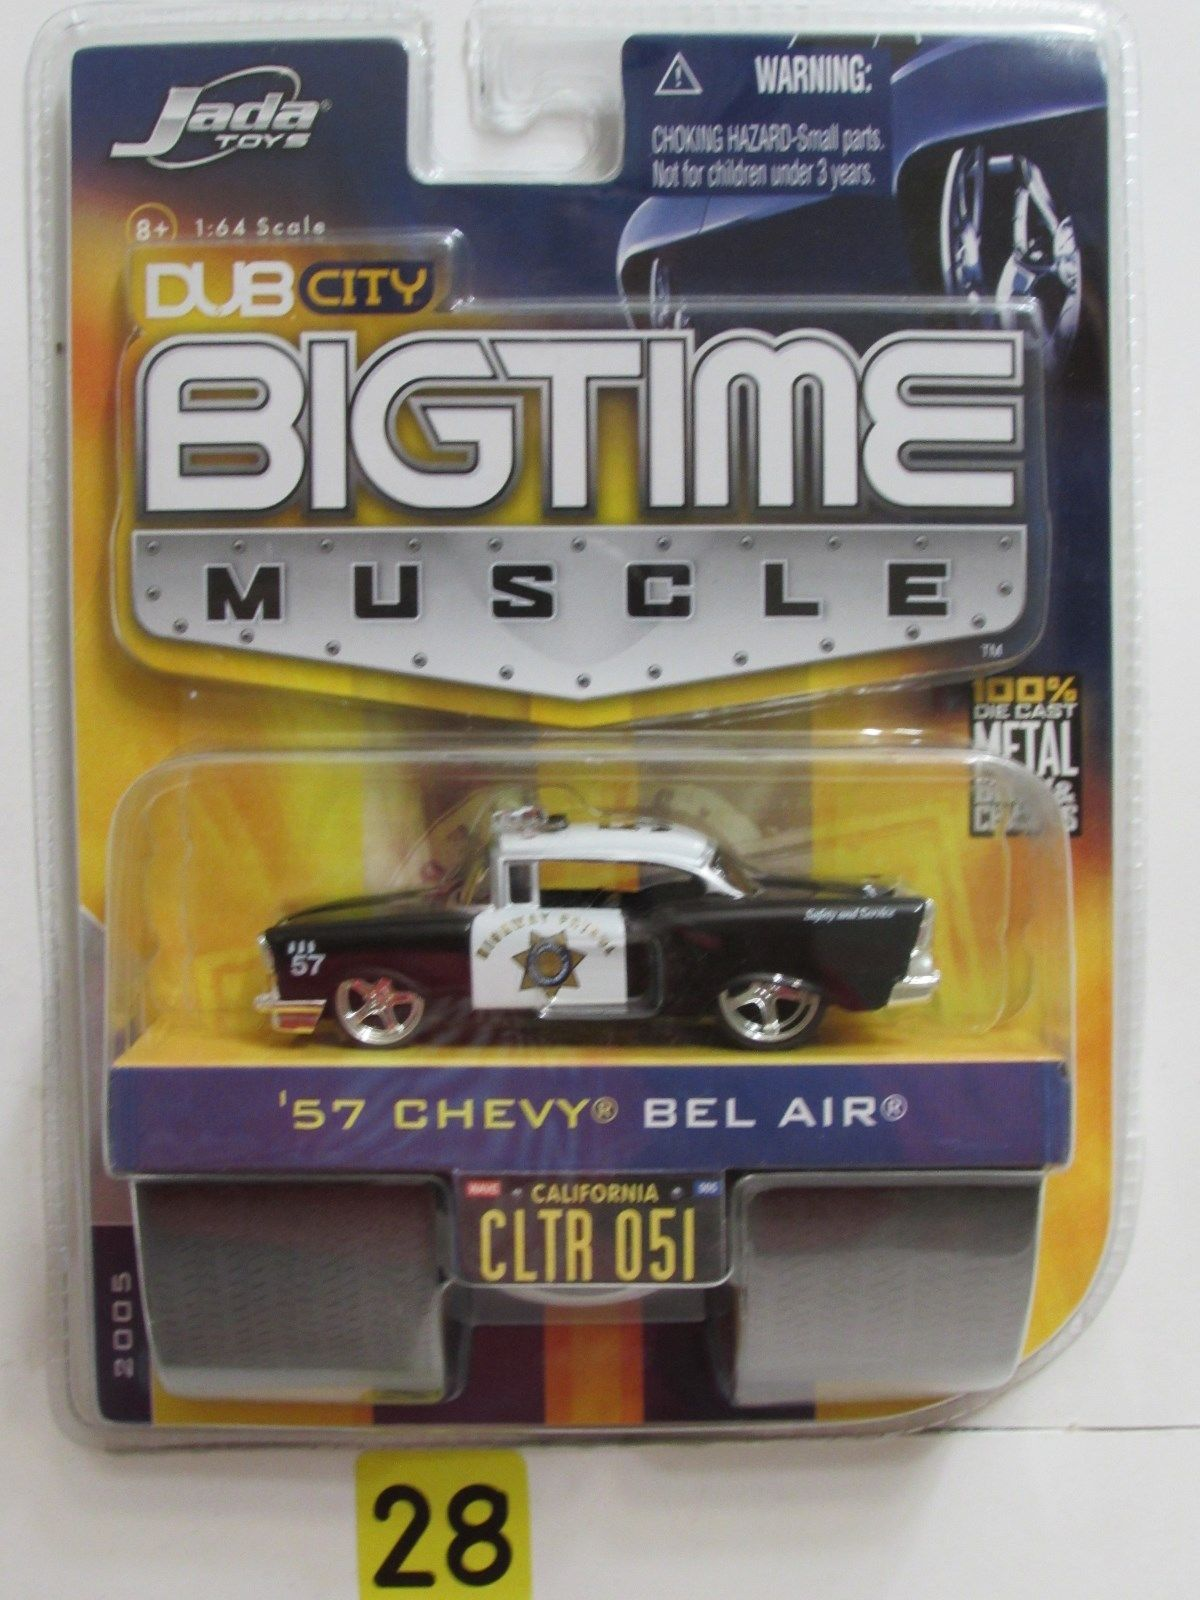 JADA DUB CITY BIGTIME MUSCLE '57 CHEVY BEL AIR 051